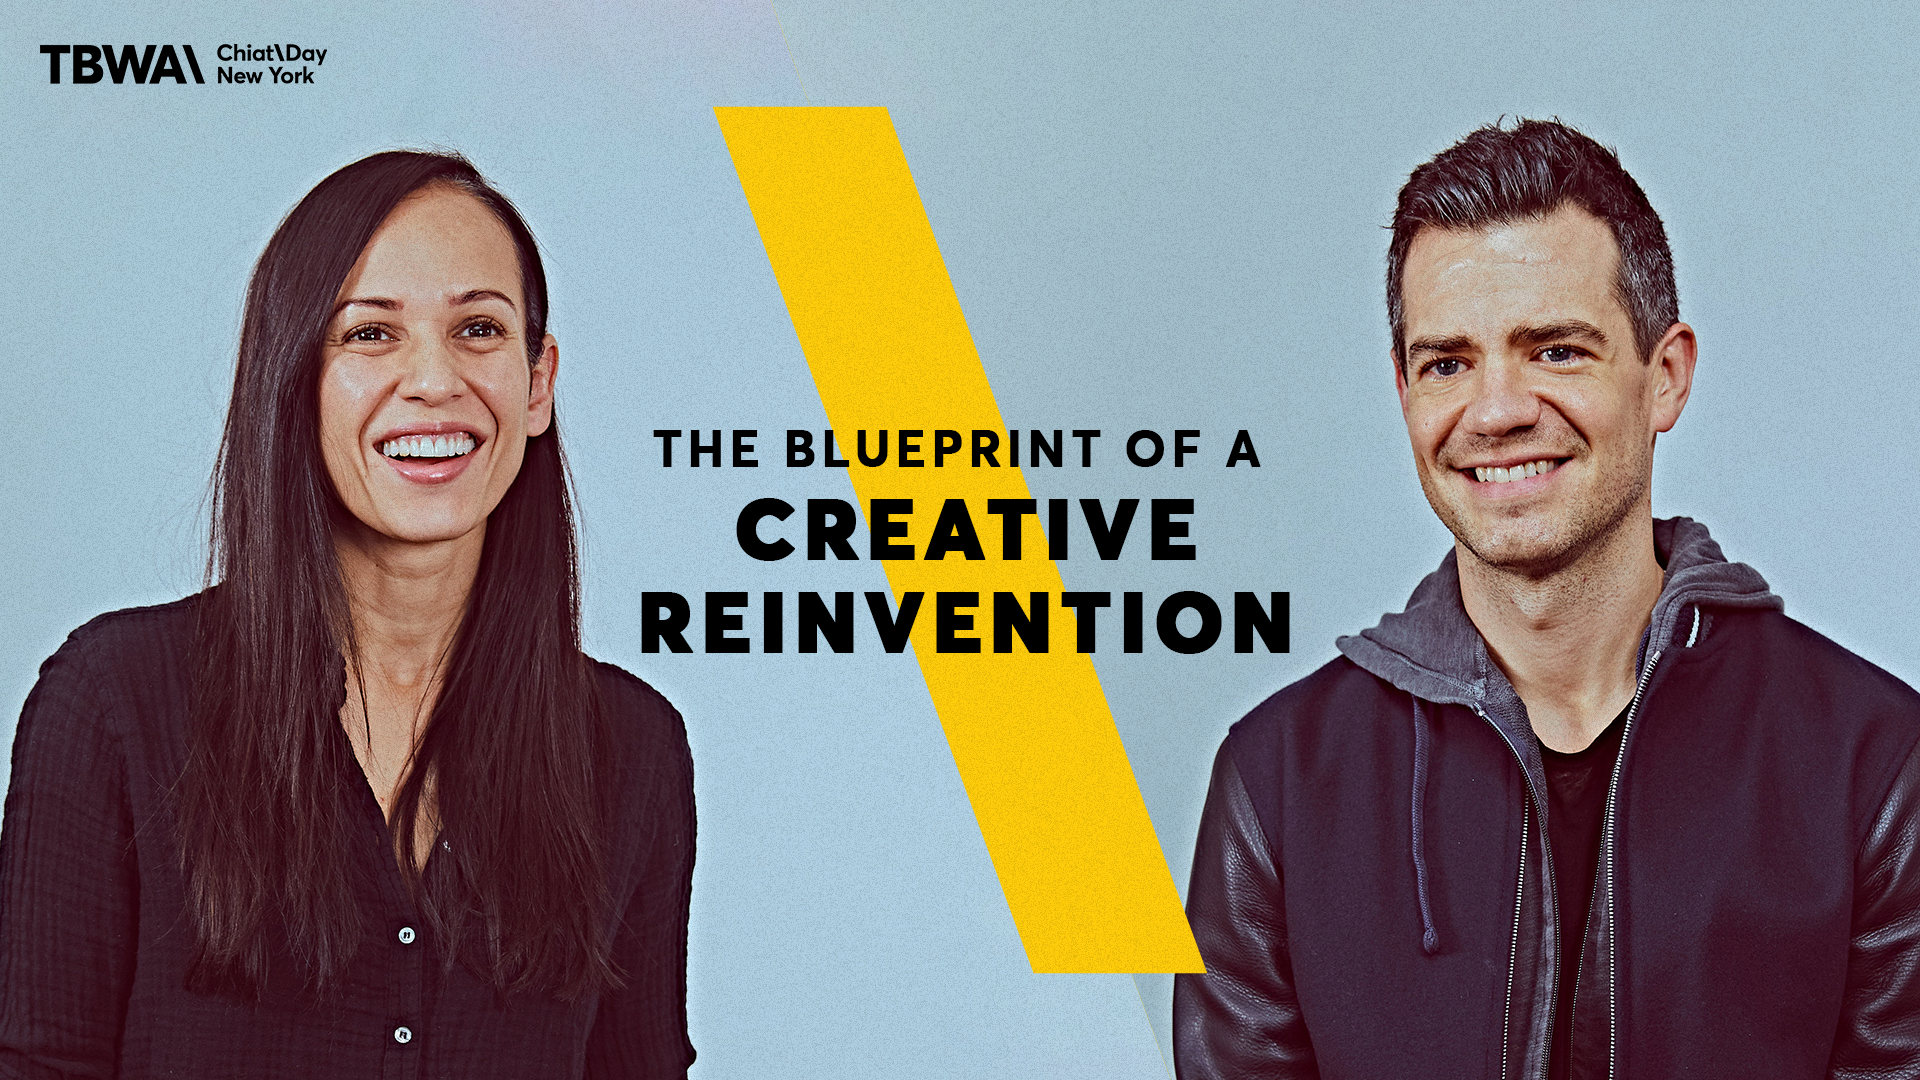 TBWA\Chiat\Day New York Present The Blueprint Of A Creative Reinvention